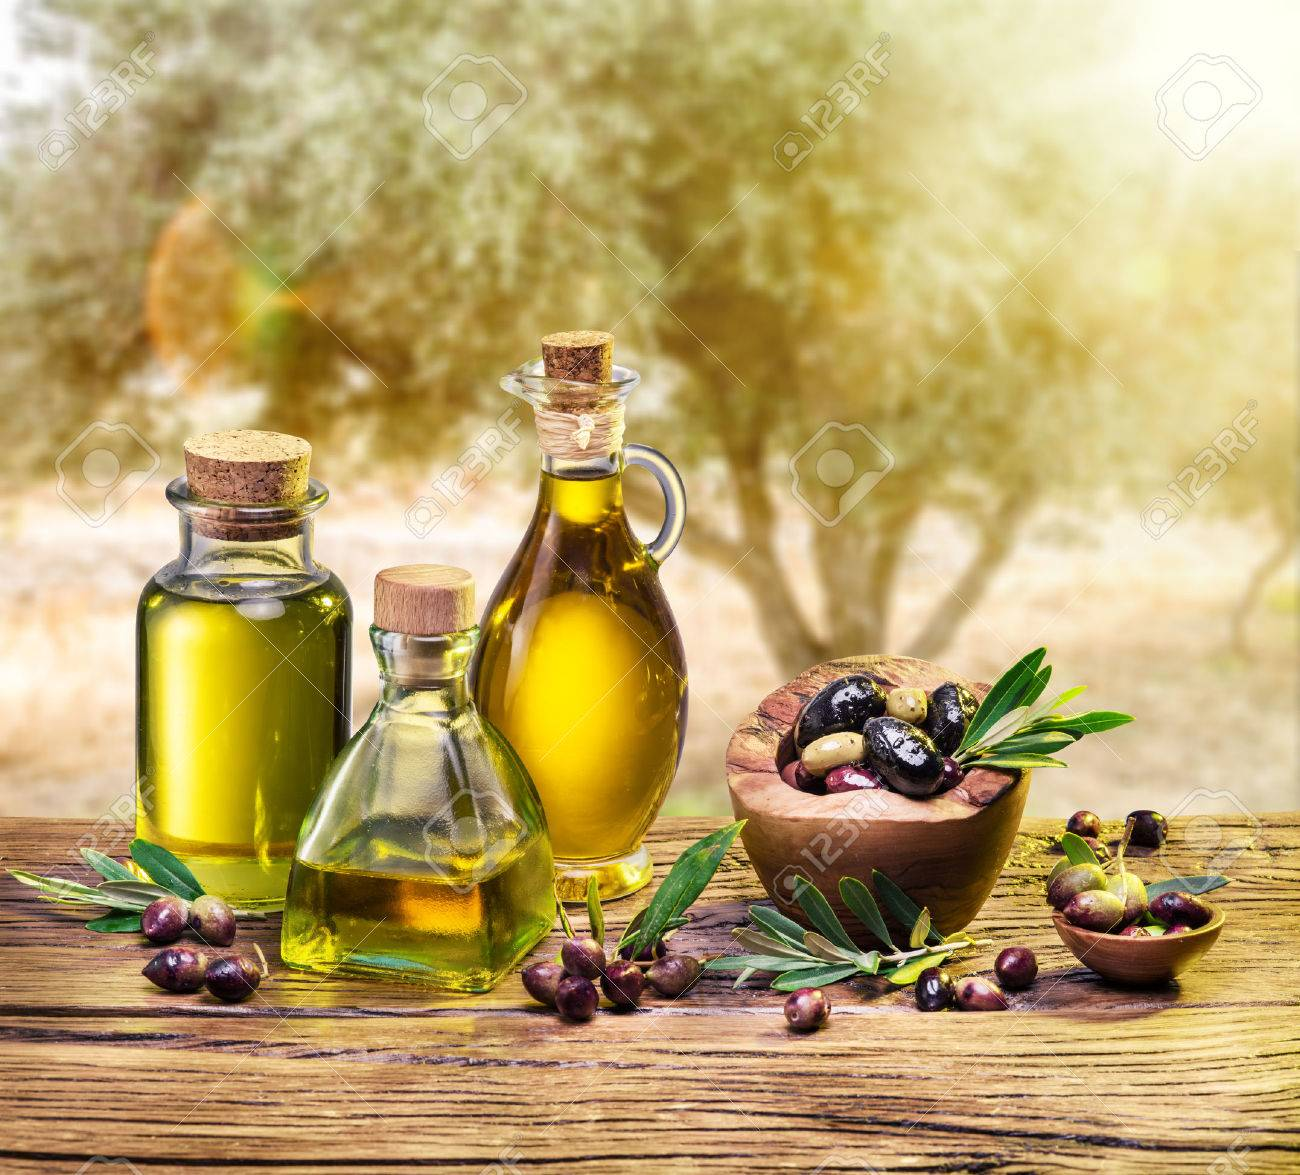 Olive oil and berries are on the wooden table under the olive tree. Standard-Bild - 49092144